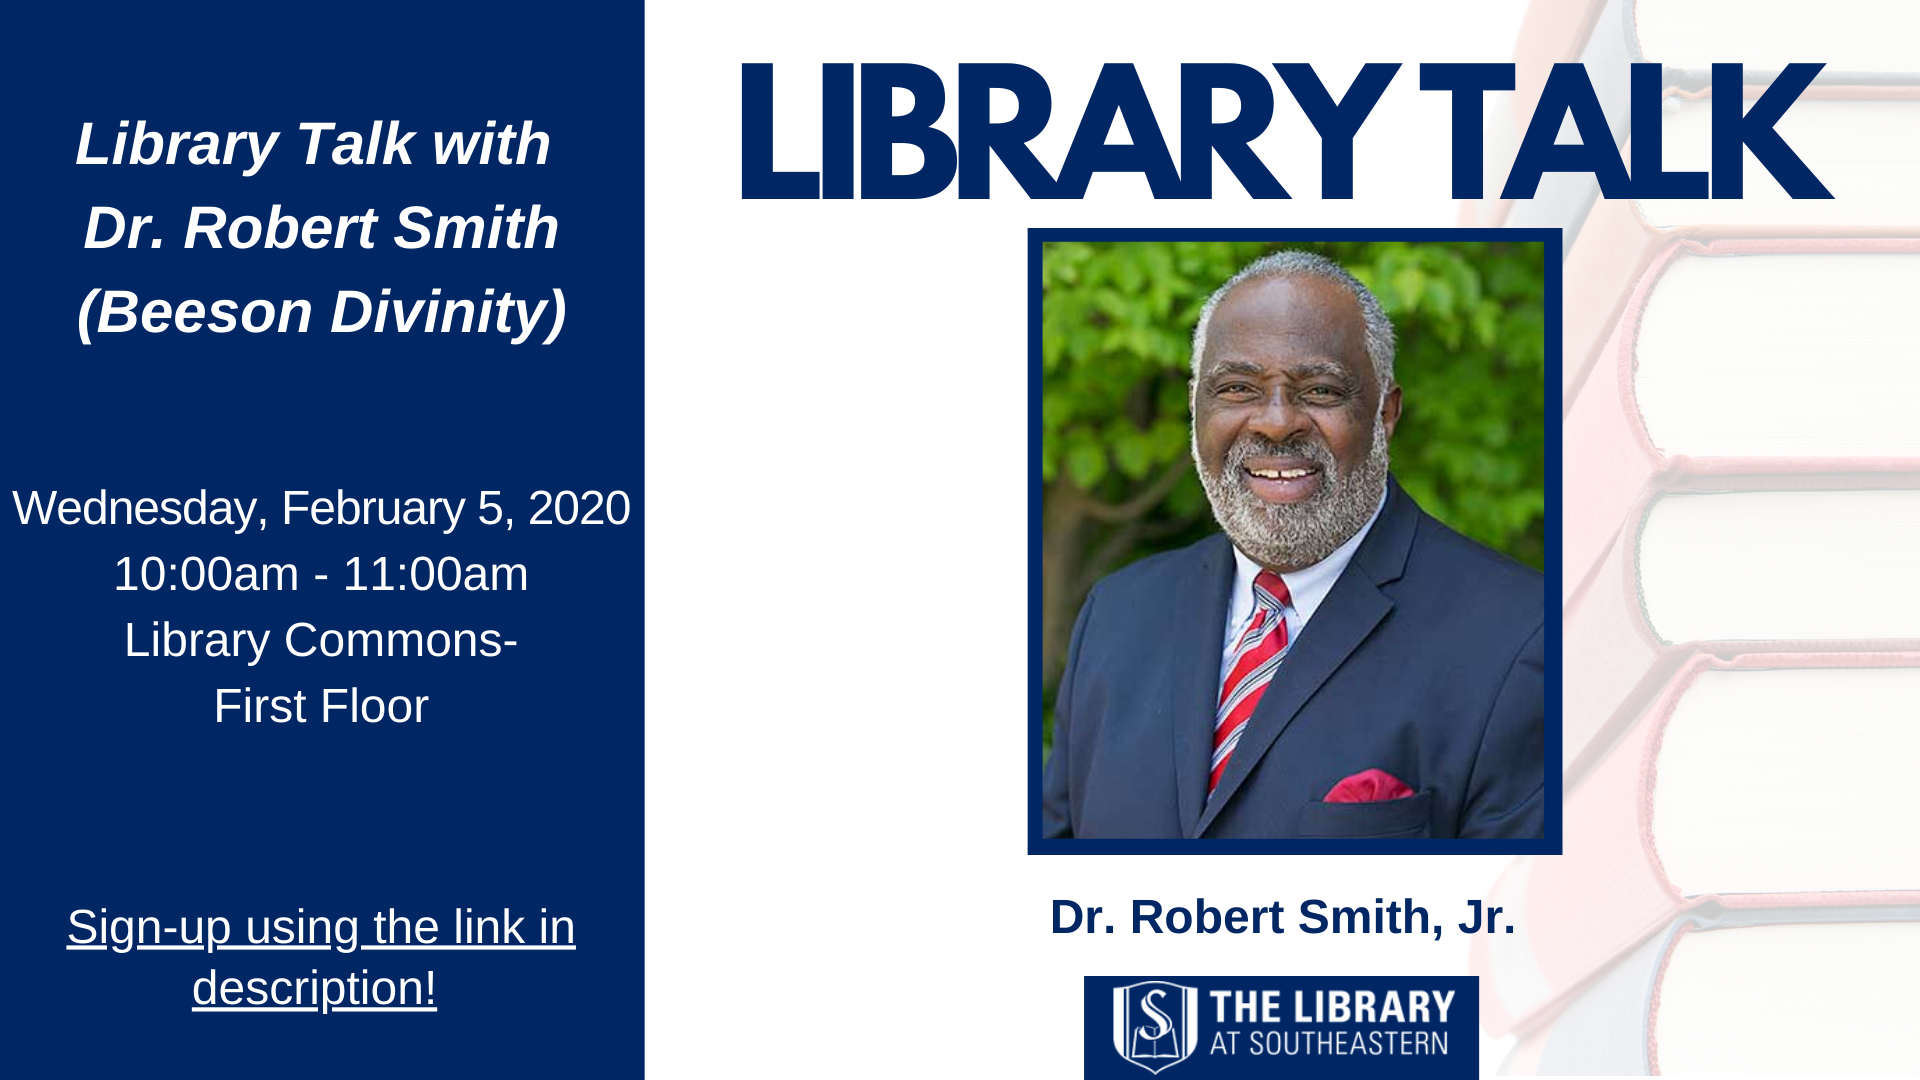 Library Talk with Dr. Robert Smith